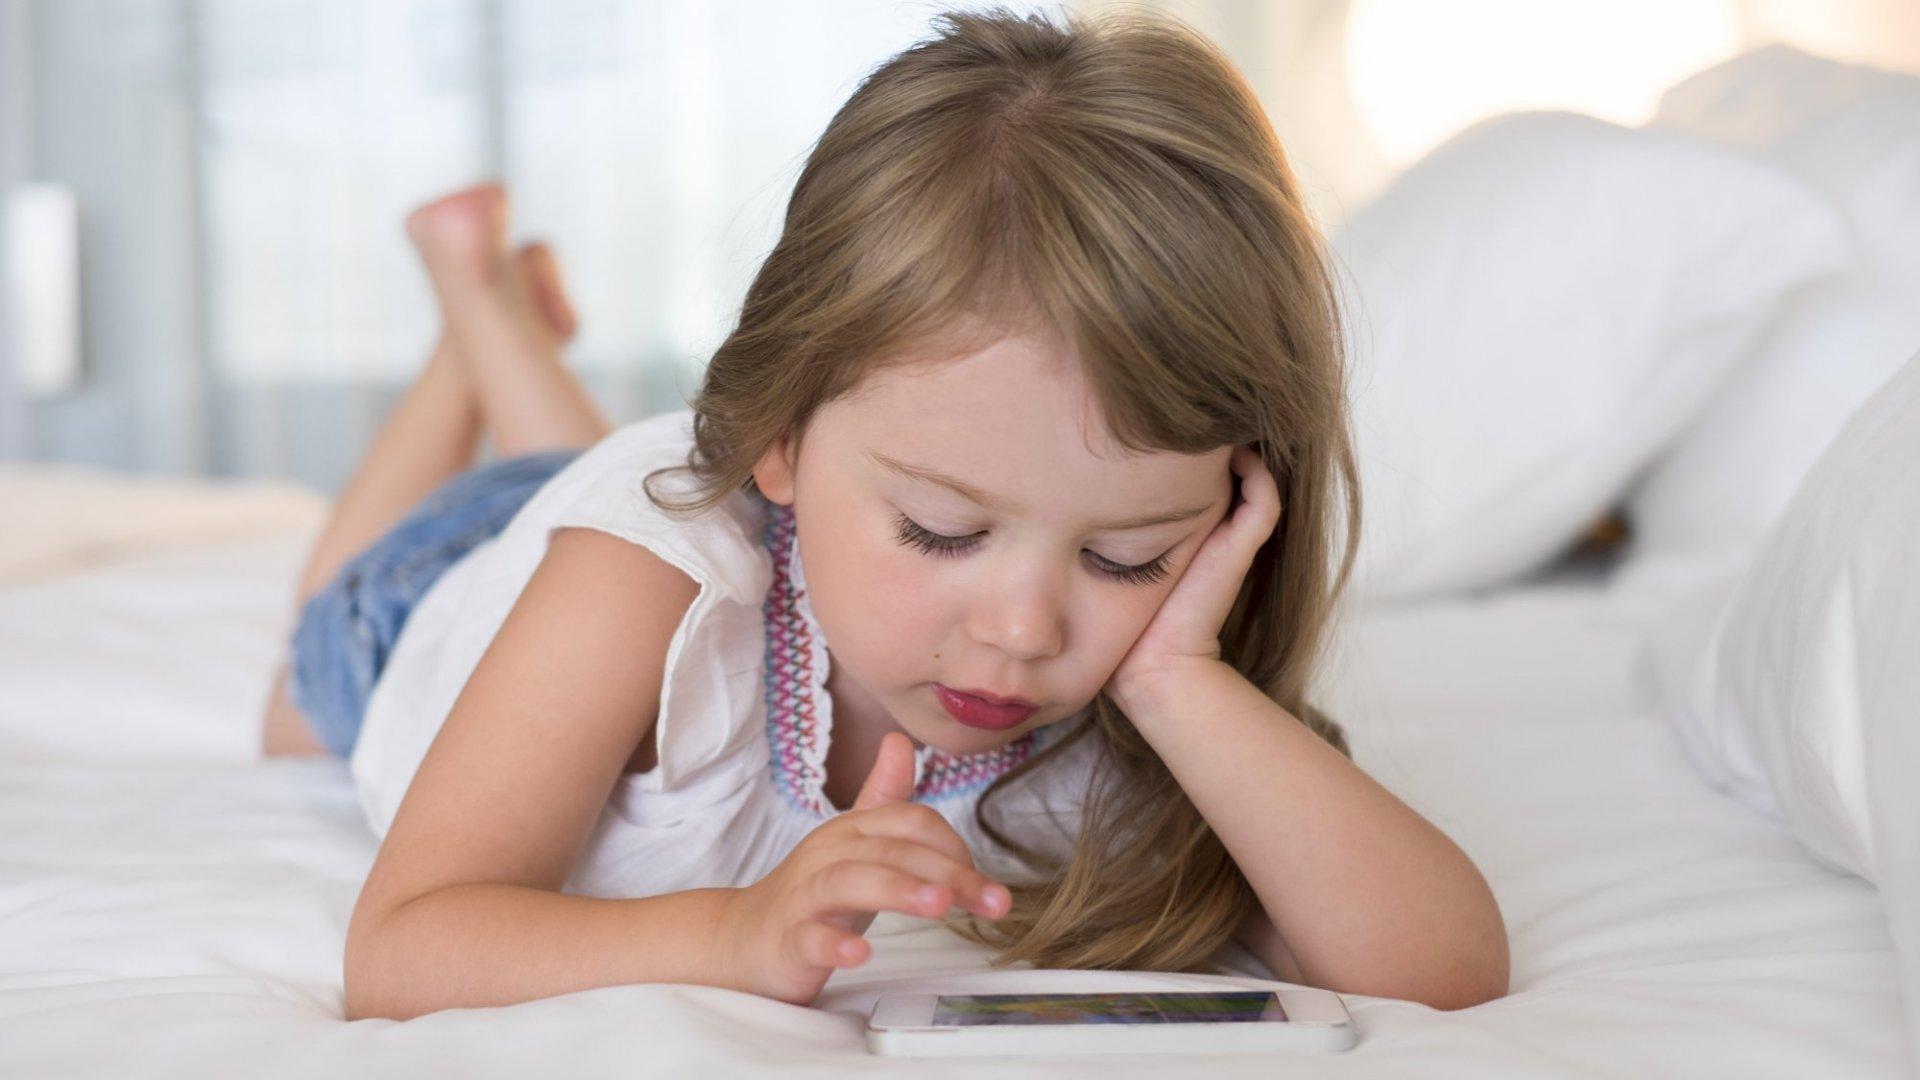 How to Know When Your Kids Should Start Using a Smartphone or Tablet